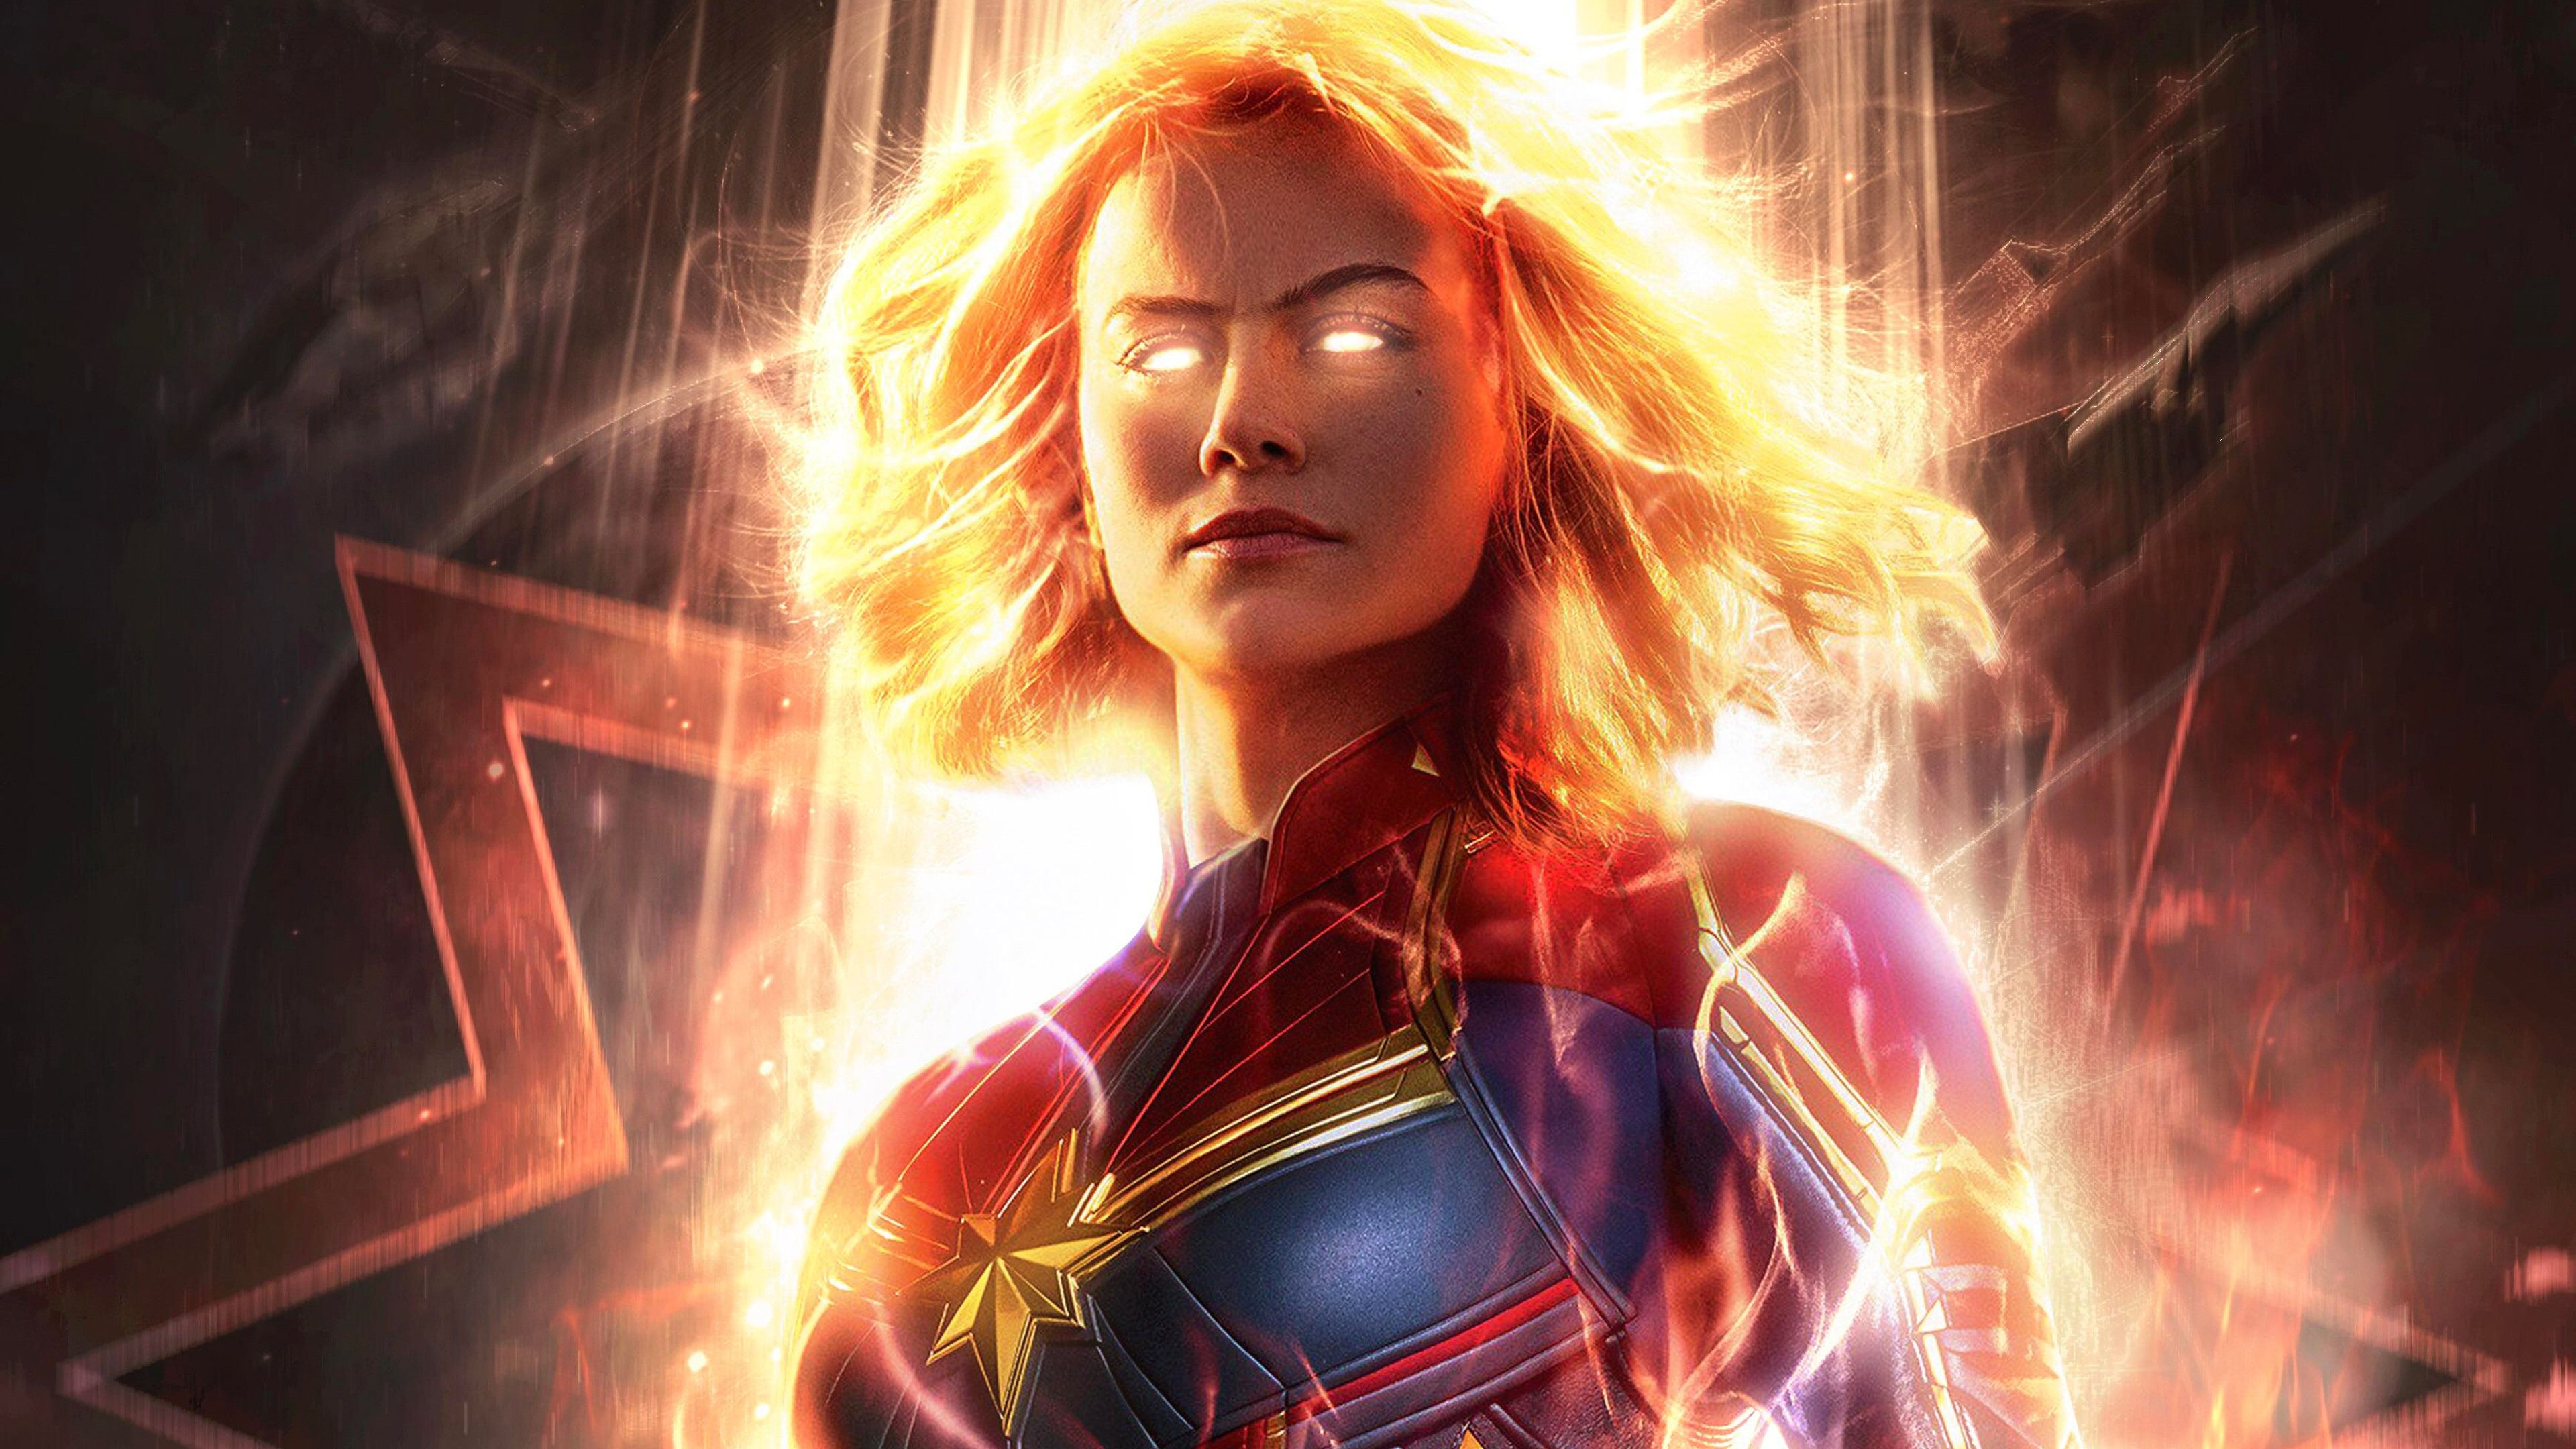 Captain Marvel Movie 2019 Carol Danvers Brie Larson 4k Wallpaper Marvel Comics Captain Marvel Movie 2019 Captain Captain Marvel Marvel New Upcoming Movies